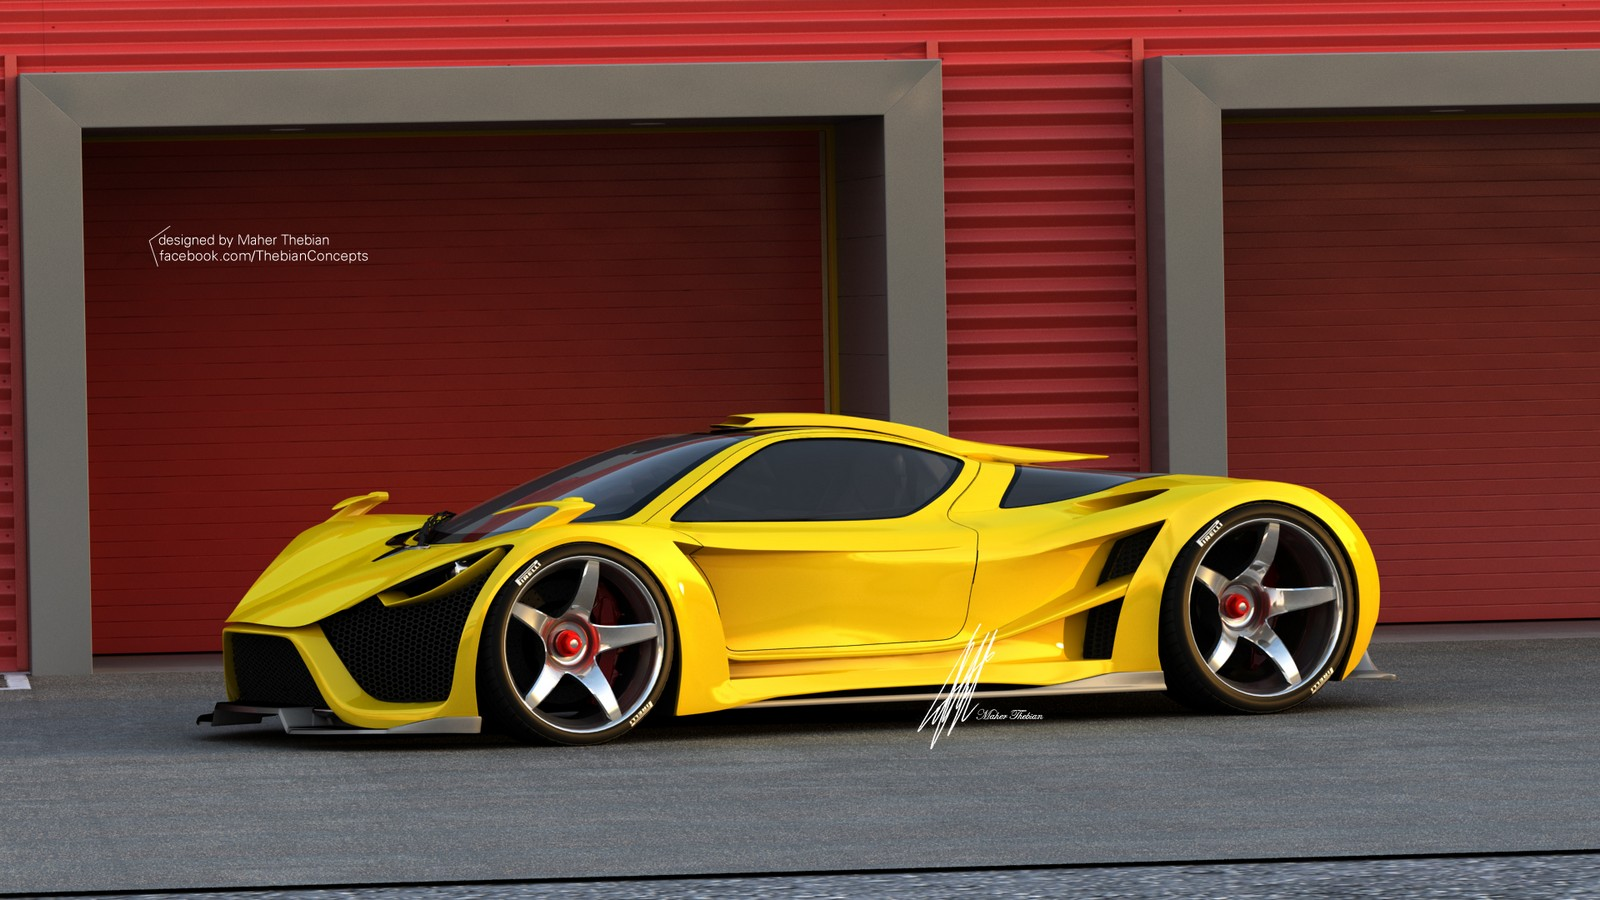 Render Scorpion Supercar By Thebian Concepts Gtspirit